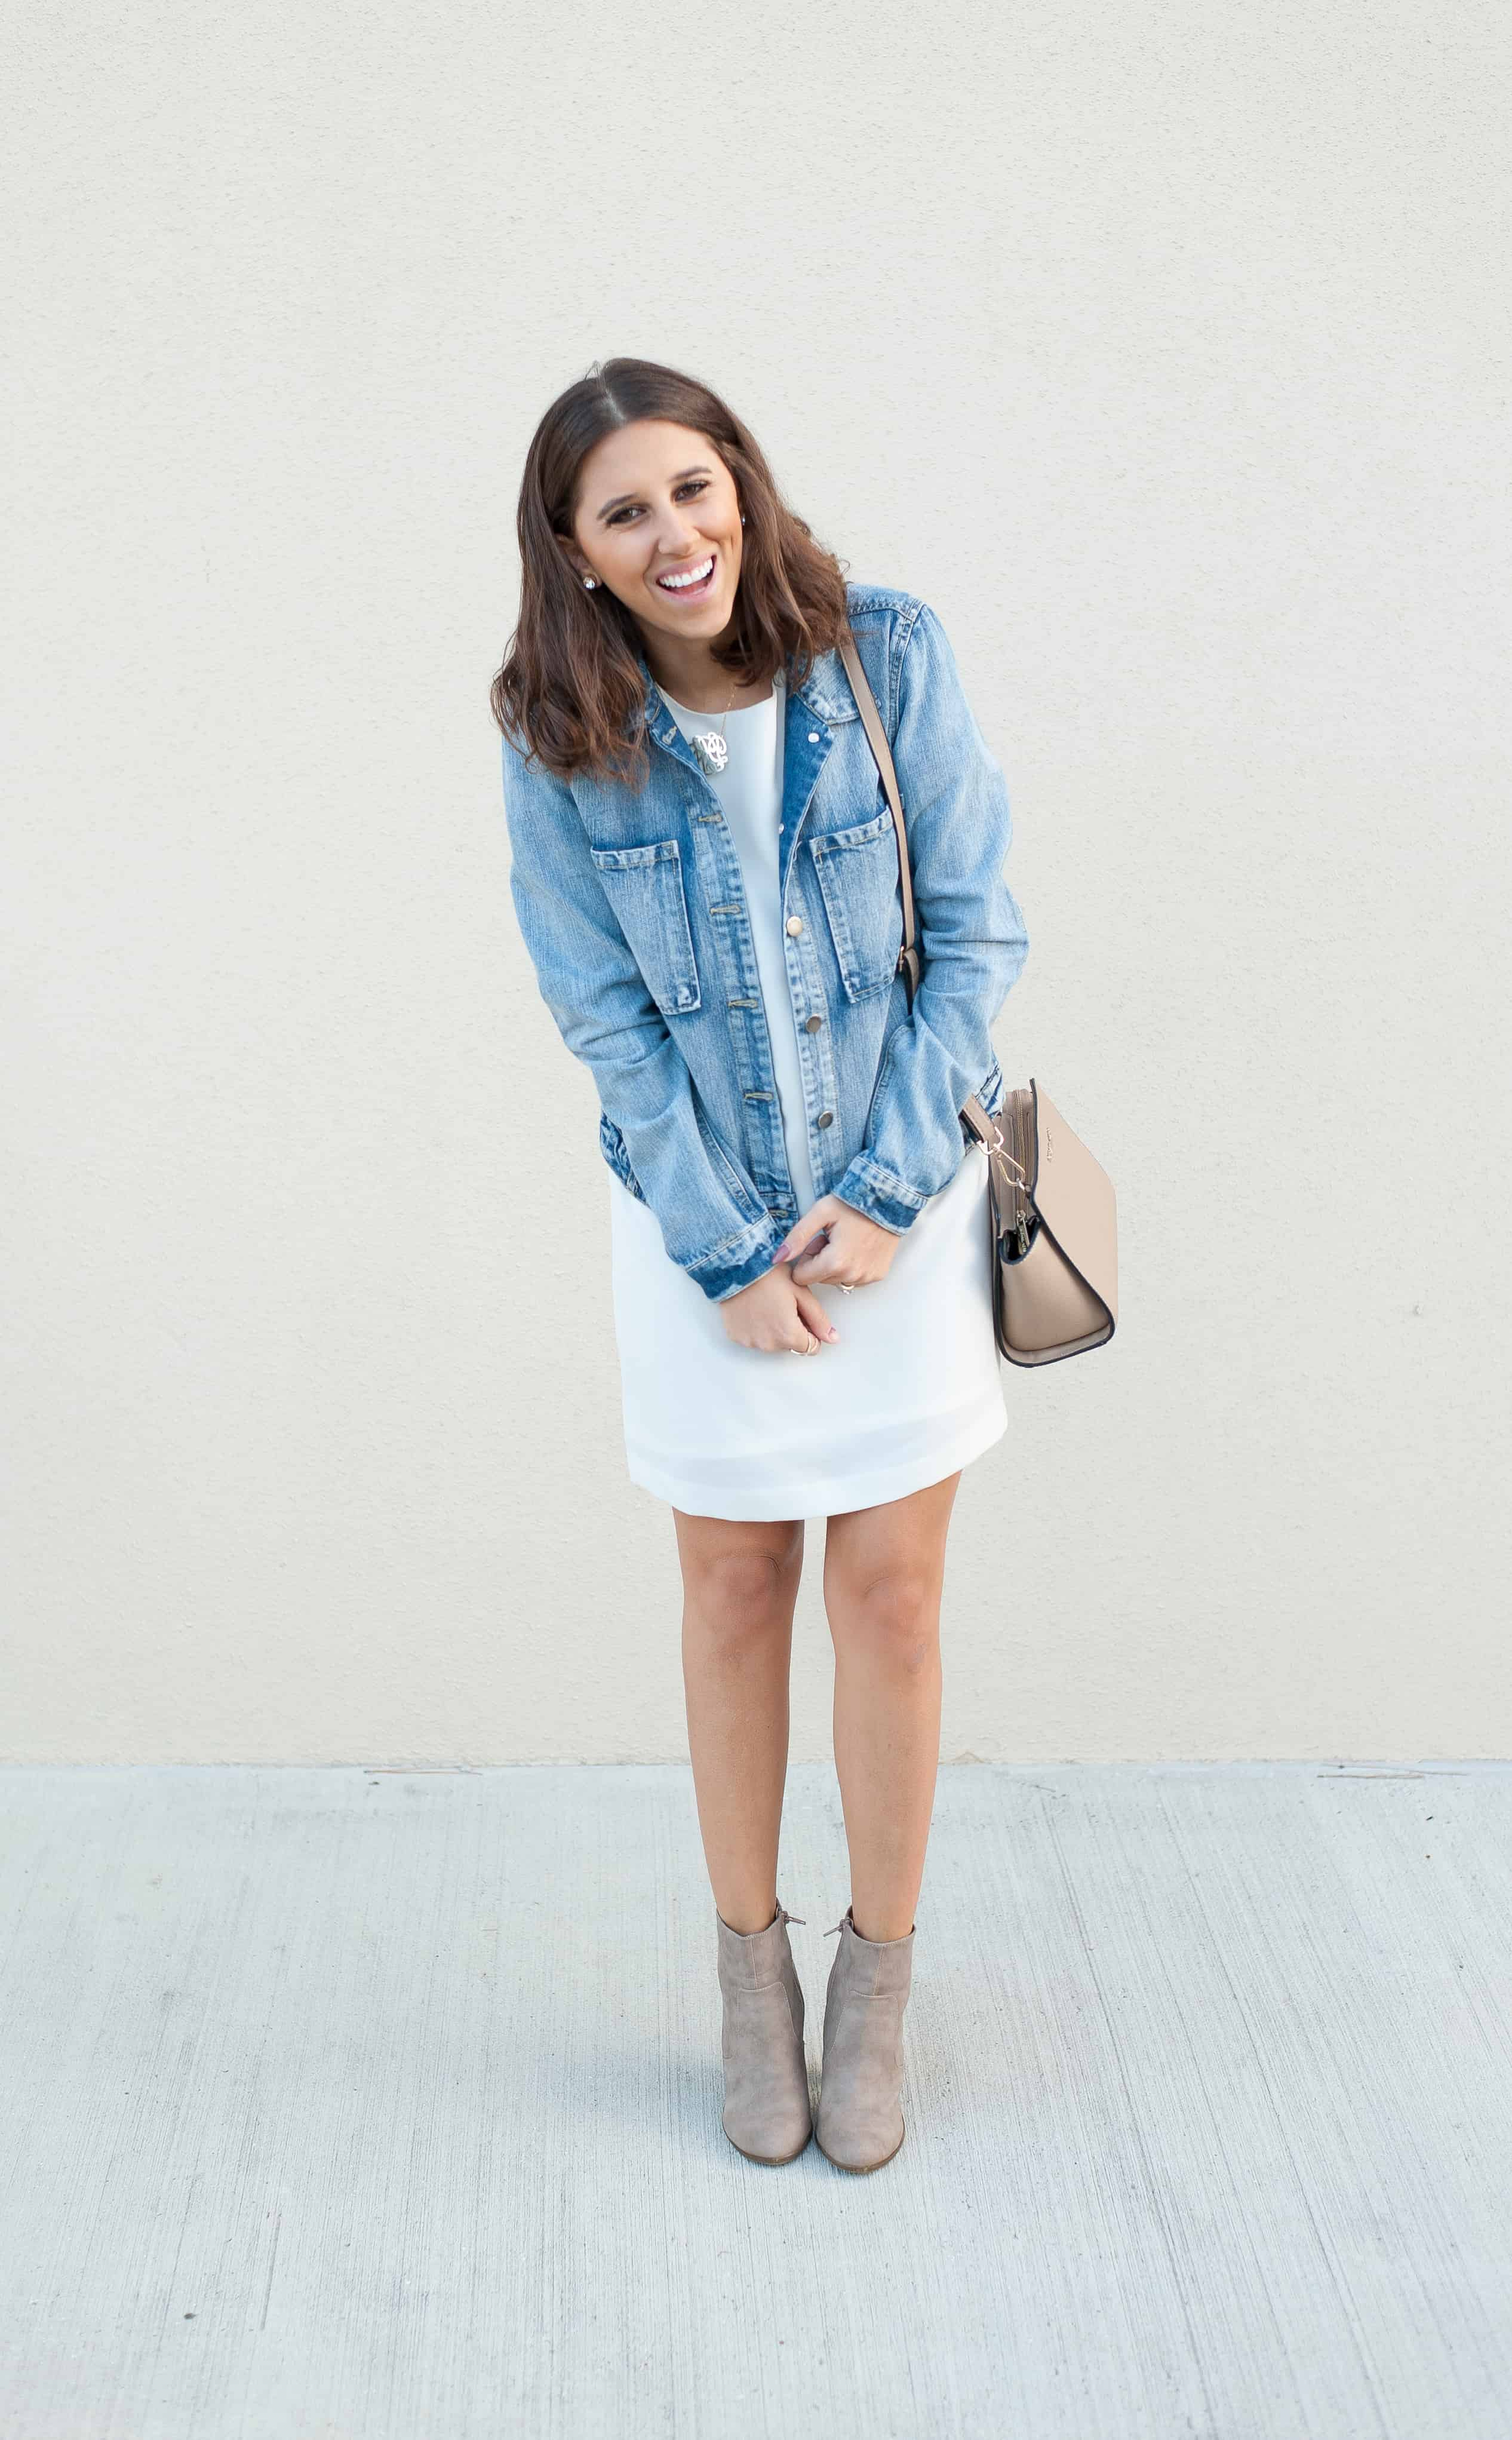 dress_up_buttercup_dede_raad_houston_fashion_style_blog (3 of 9)